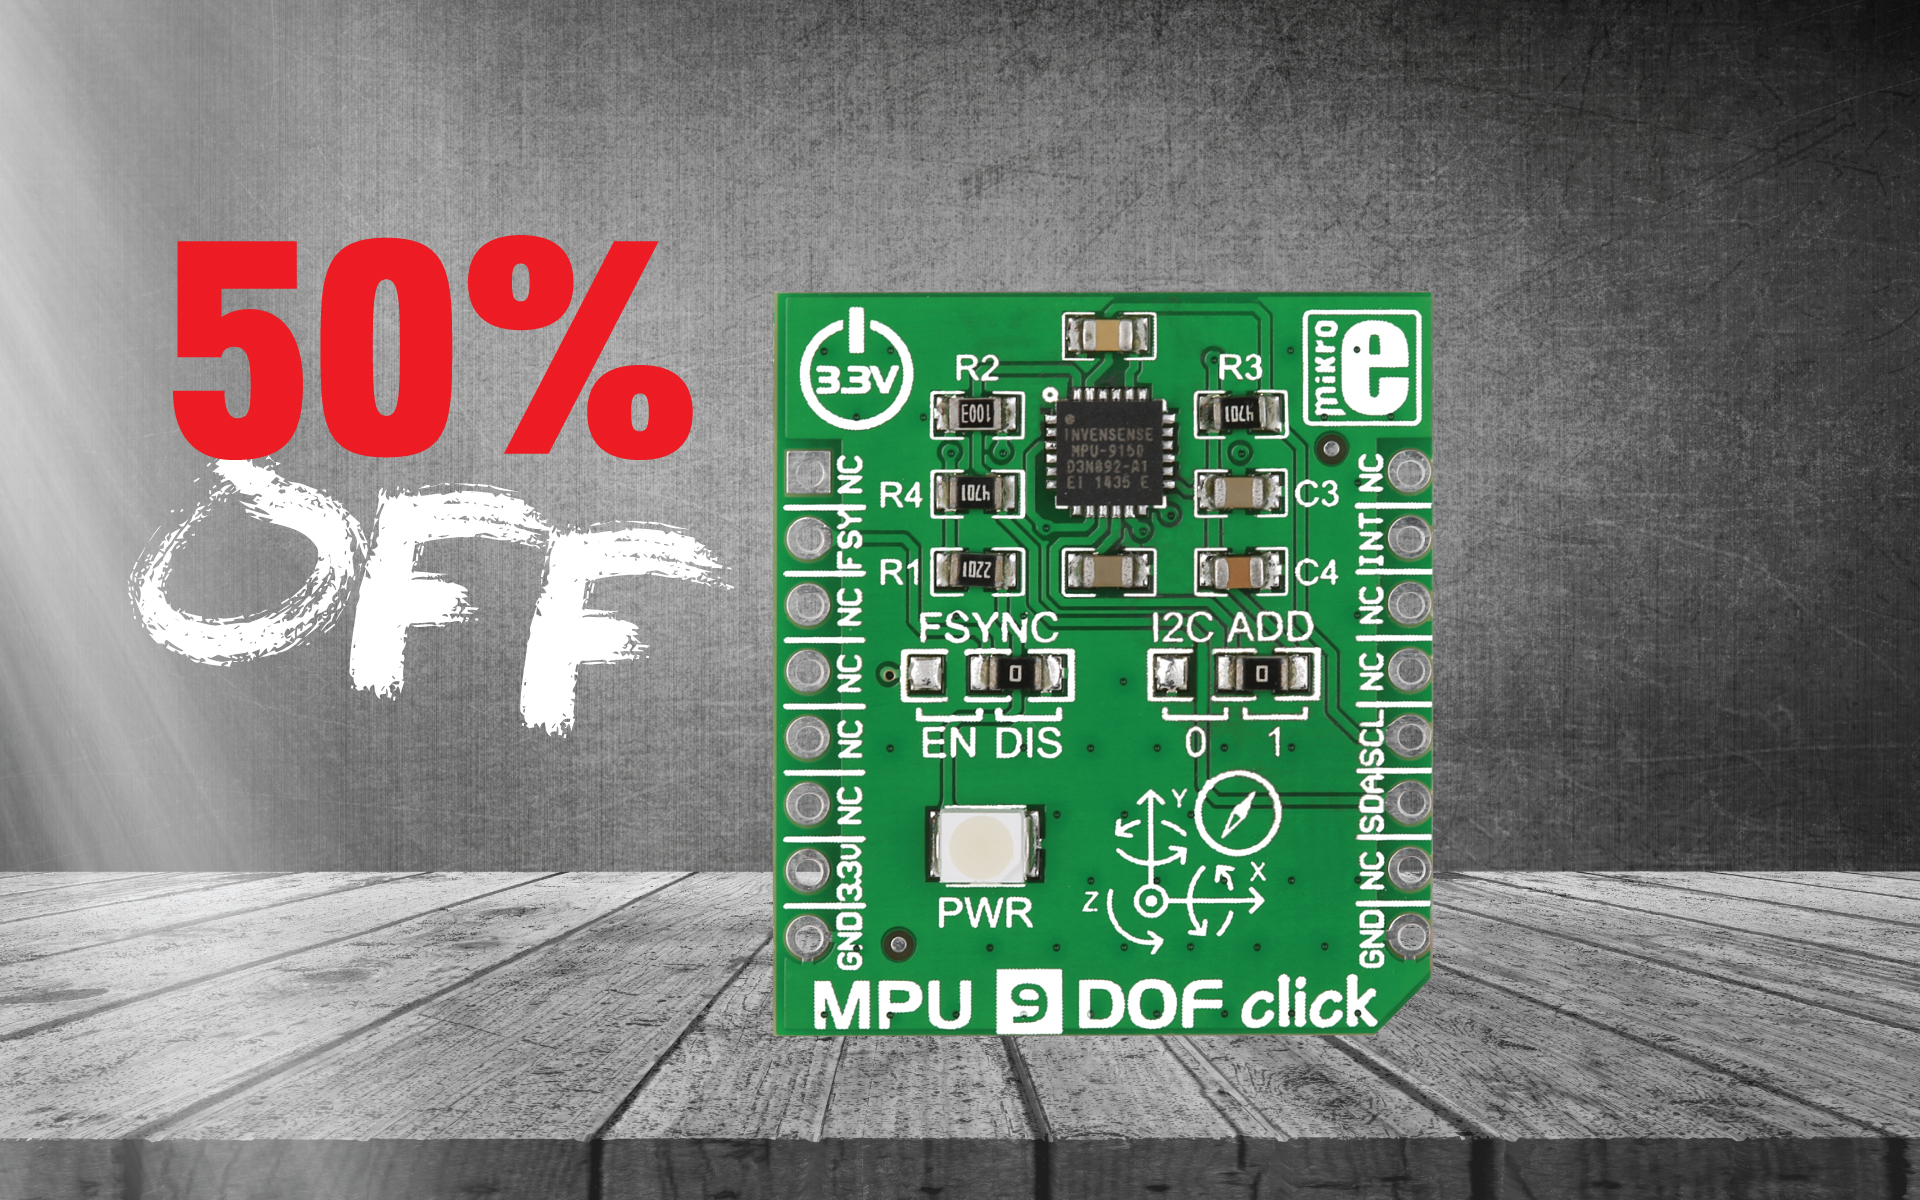 MPU 9DOF click 50% OFF - 9-axis motion tracking device